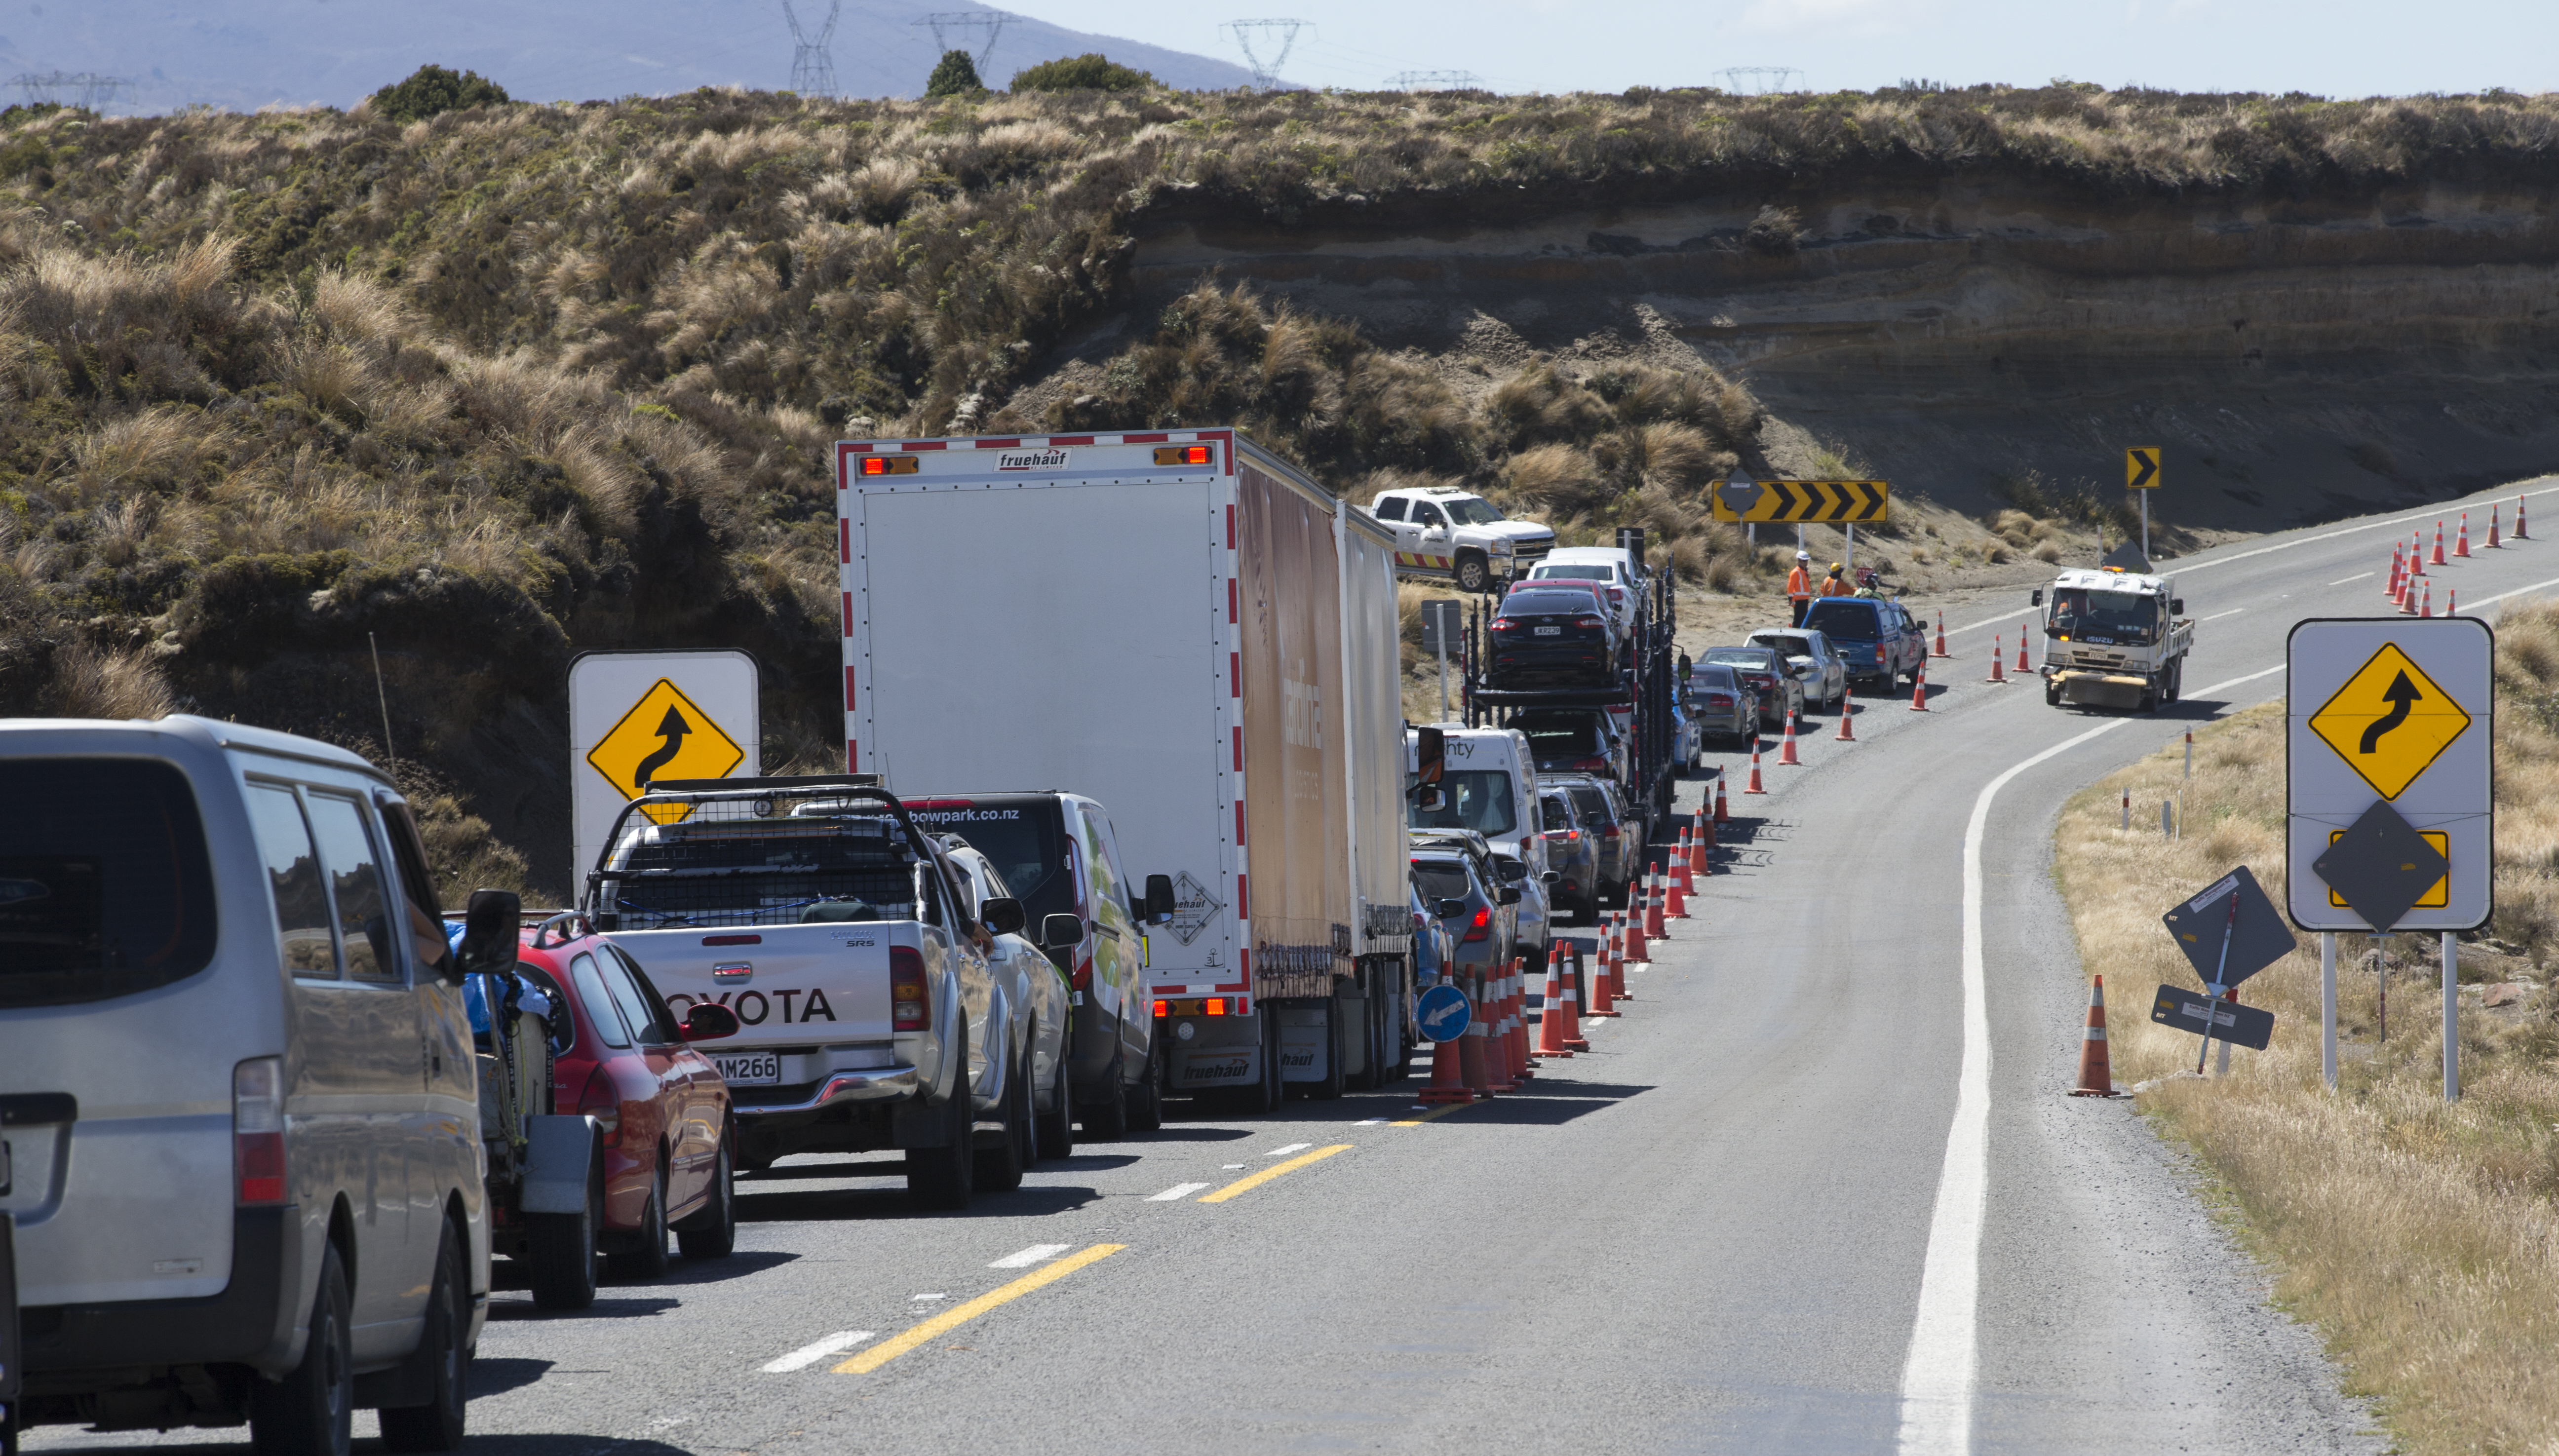 Tips for tourists affected by Desert Road closure in New